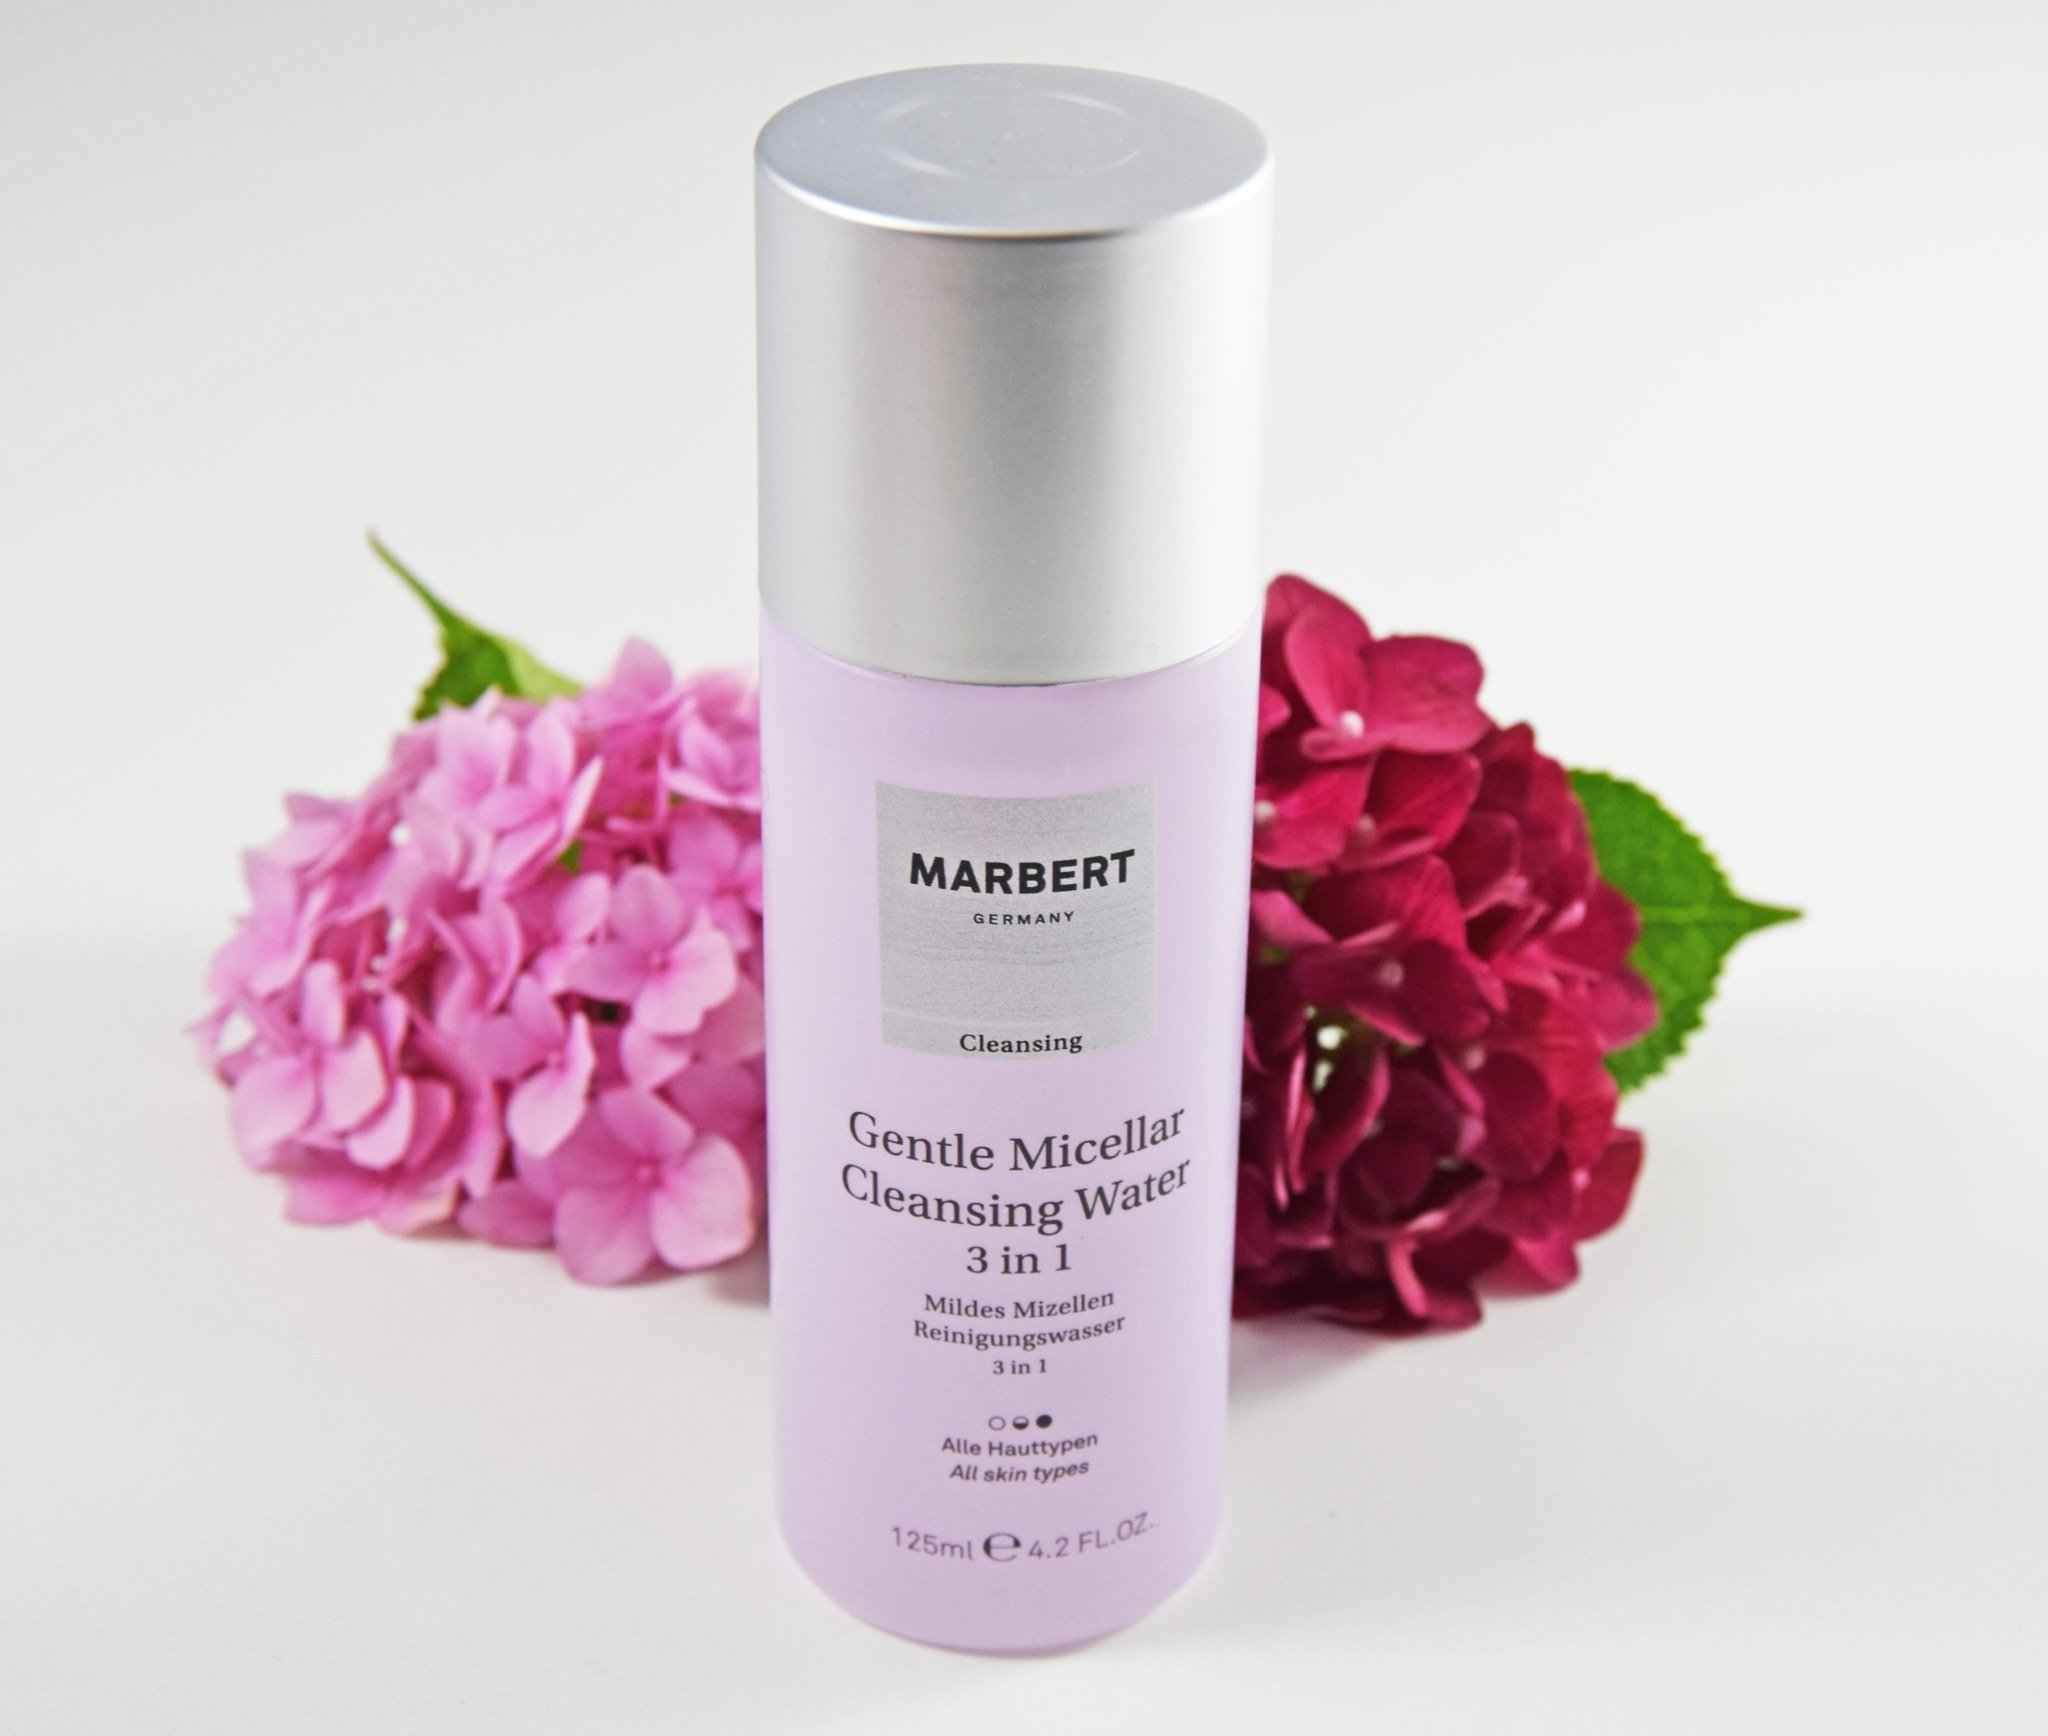 Gentle Micellar Cleansing Water 3 in 1 von Marbert